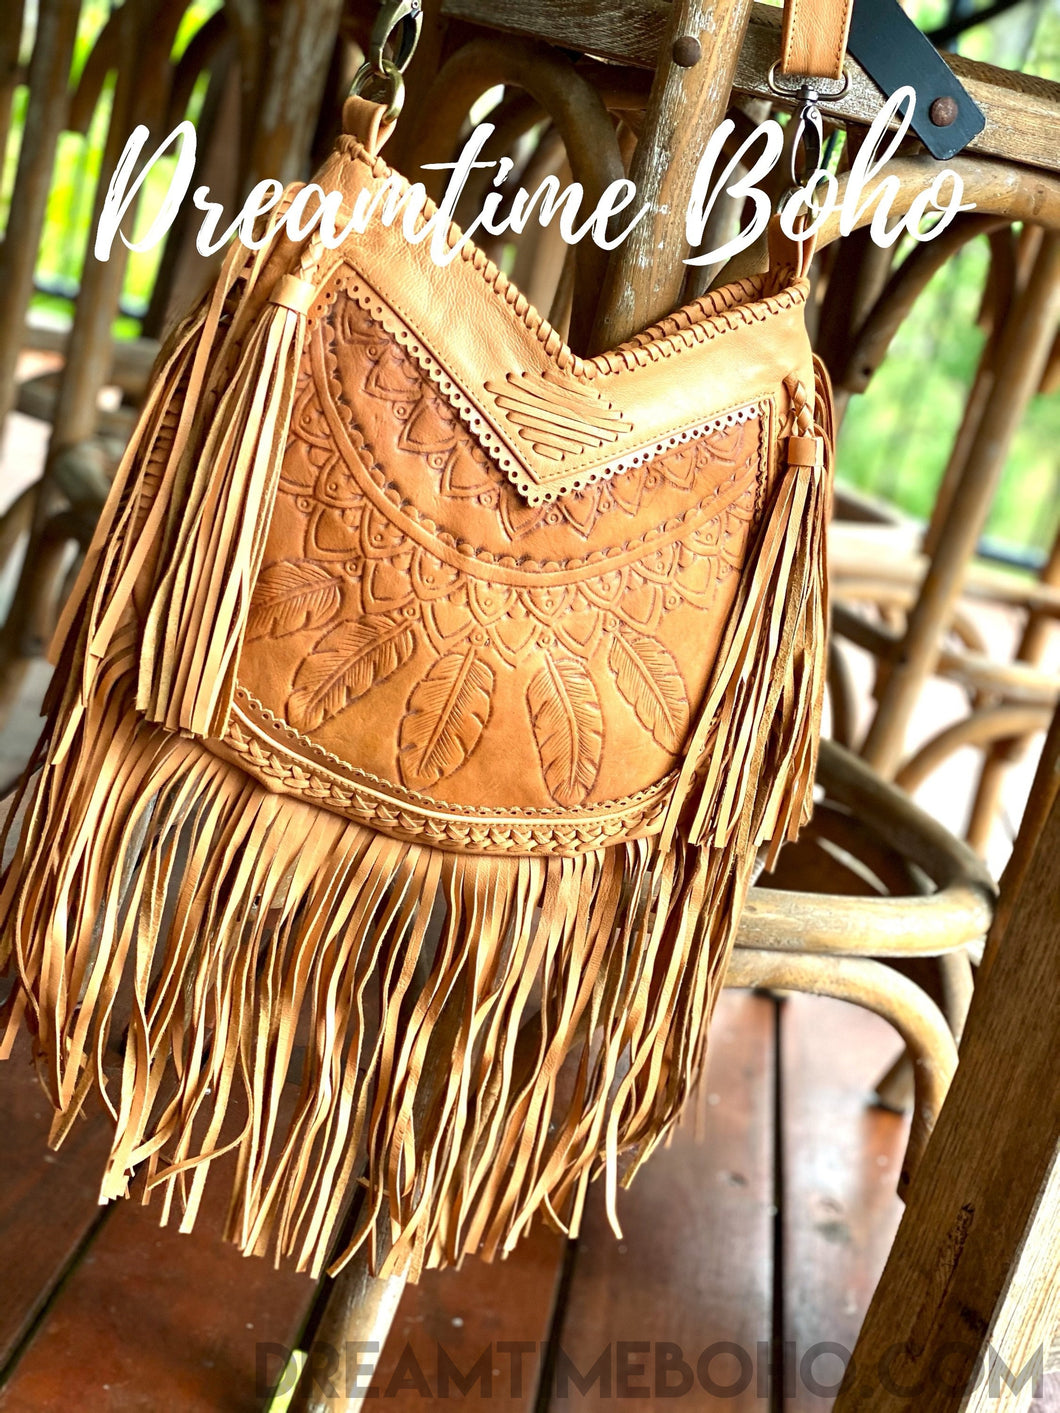 DREAMCATCHER LEATHER FRINGED CROSSBODY BOHO BAG-Leather Crossbody Bag-Dreamtime Boho-Dreamtime Boho